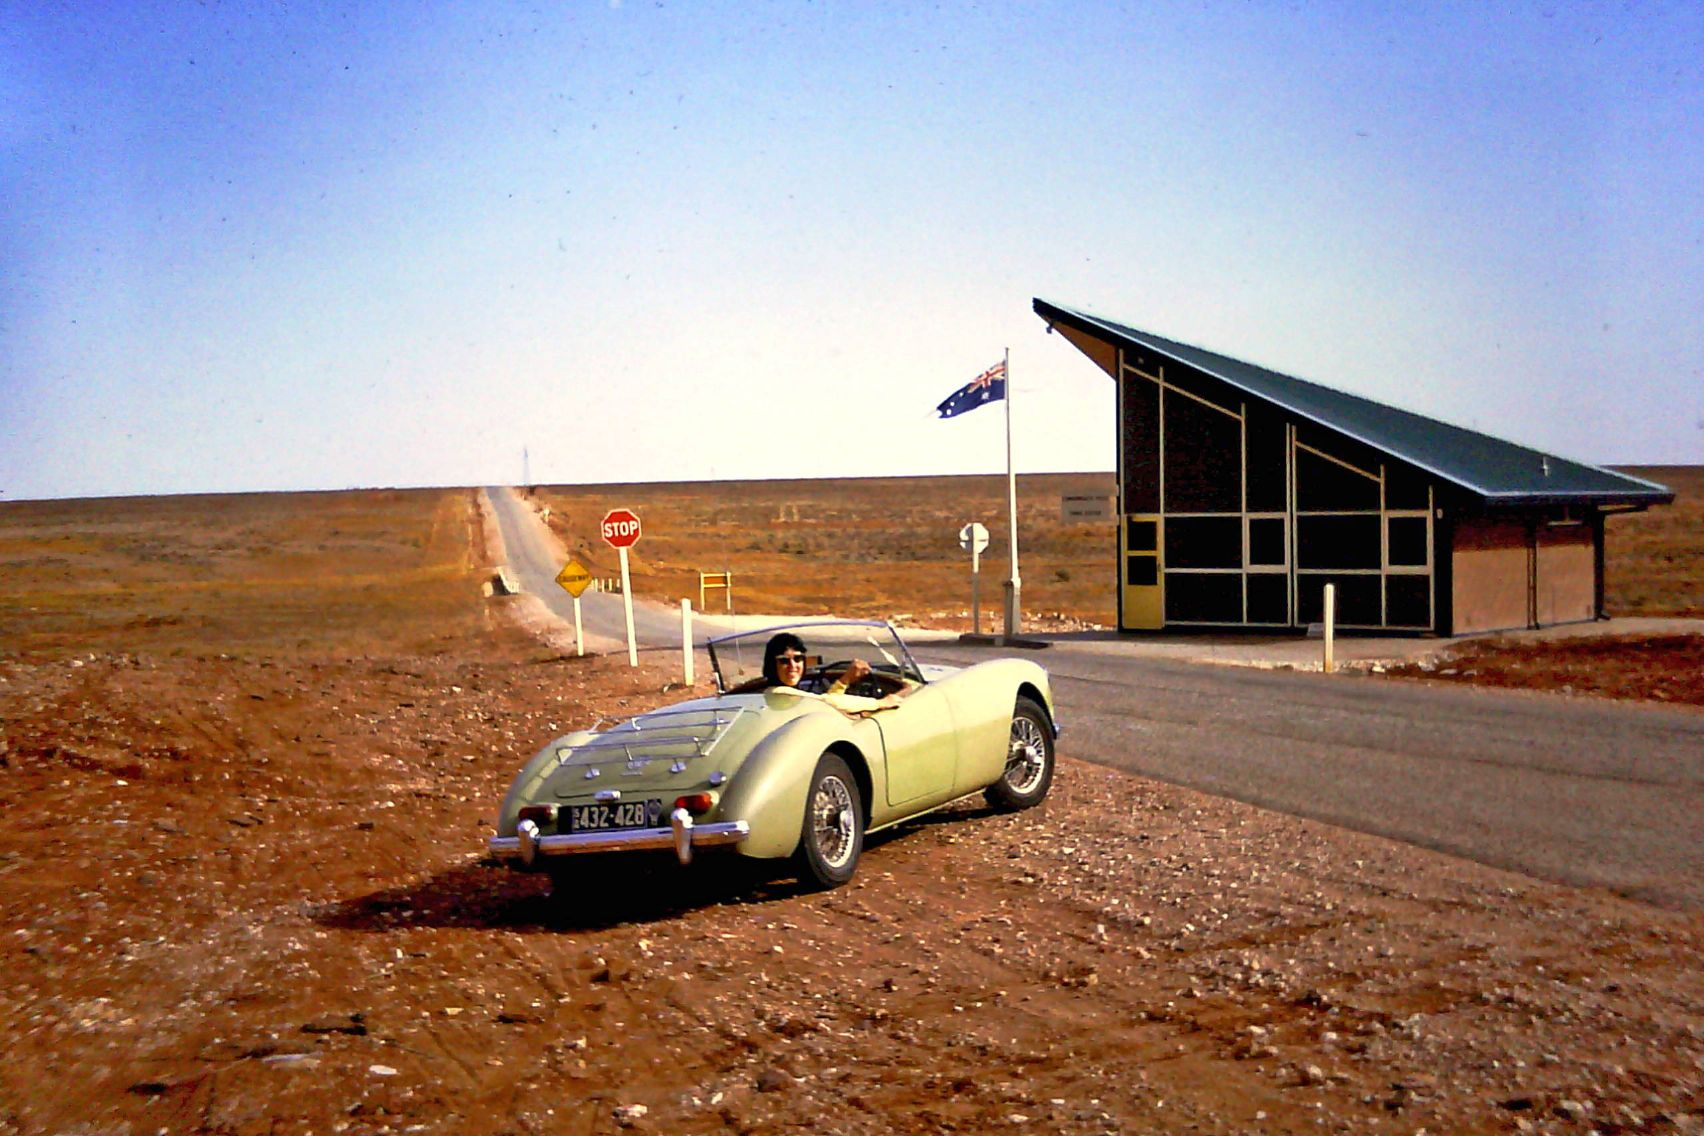 Woomera, South Australia in the 1960s.  Image ©   Pat Delgado